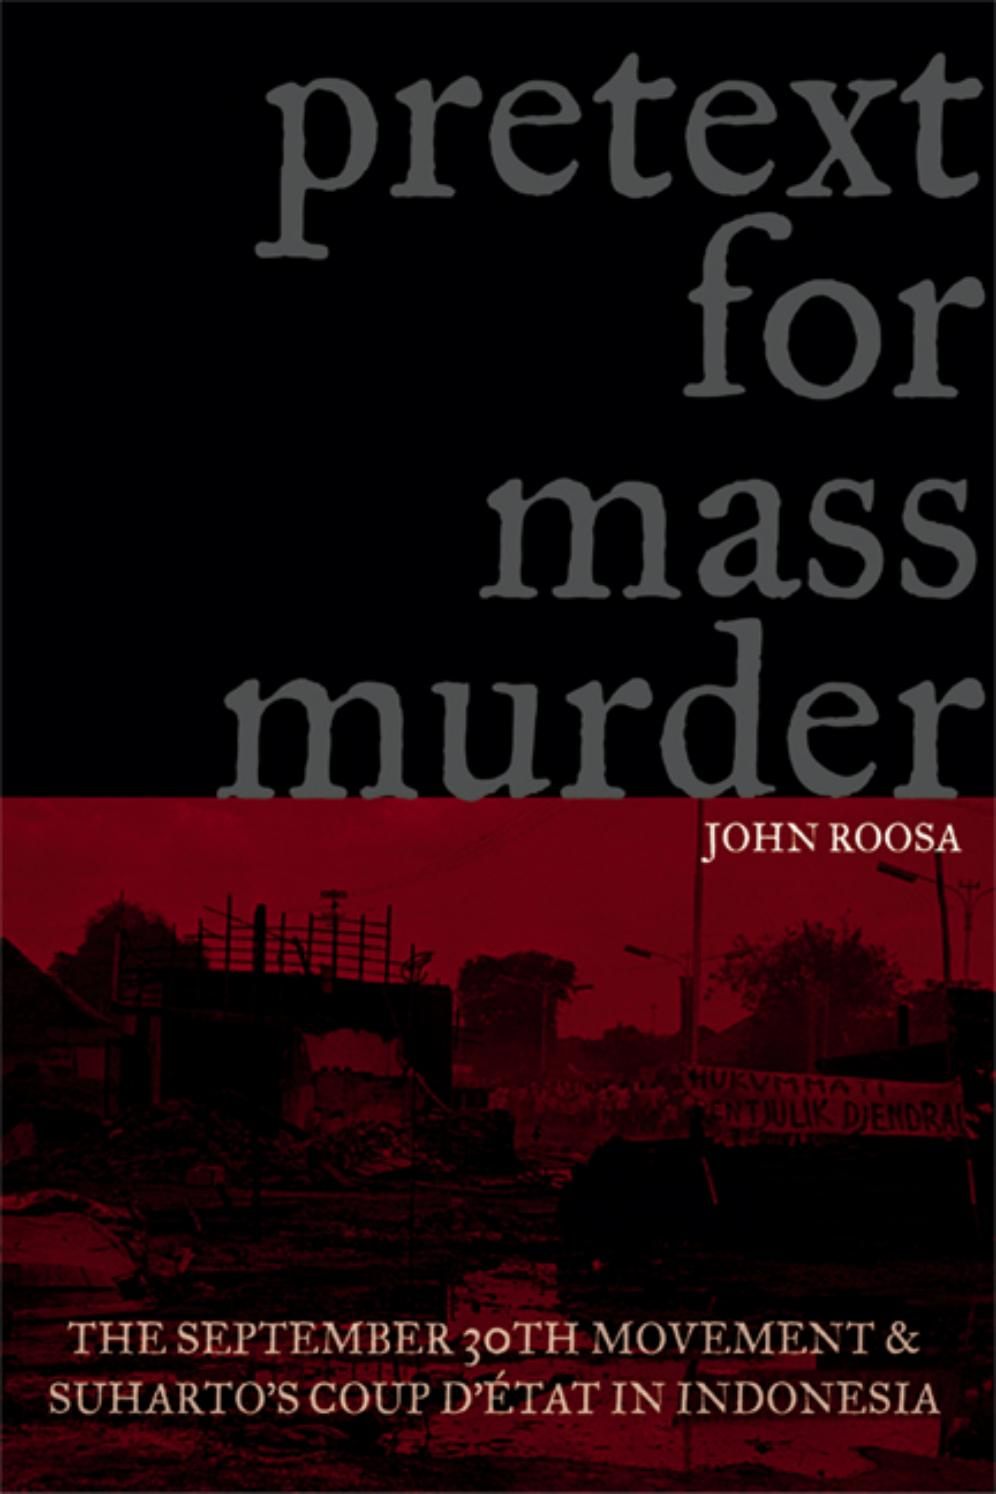 Pretext For Mass Murder John Roosa By Kruntil Issuu Tendencies Kaos Im Flying Helmet Abu Tua S